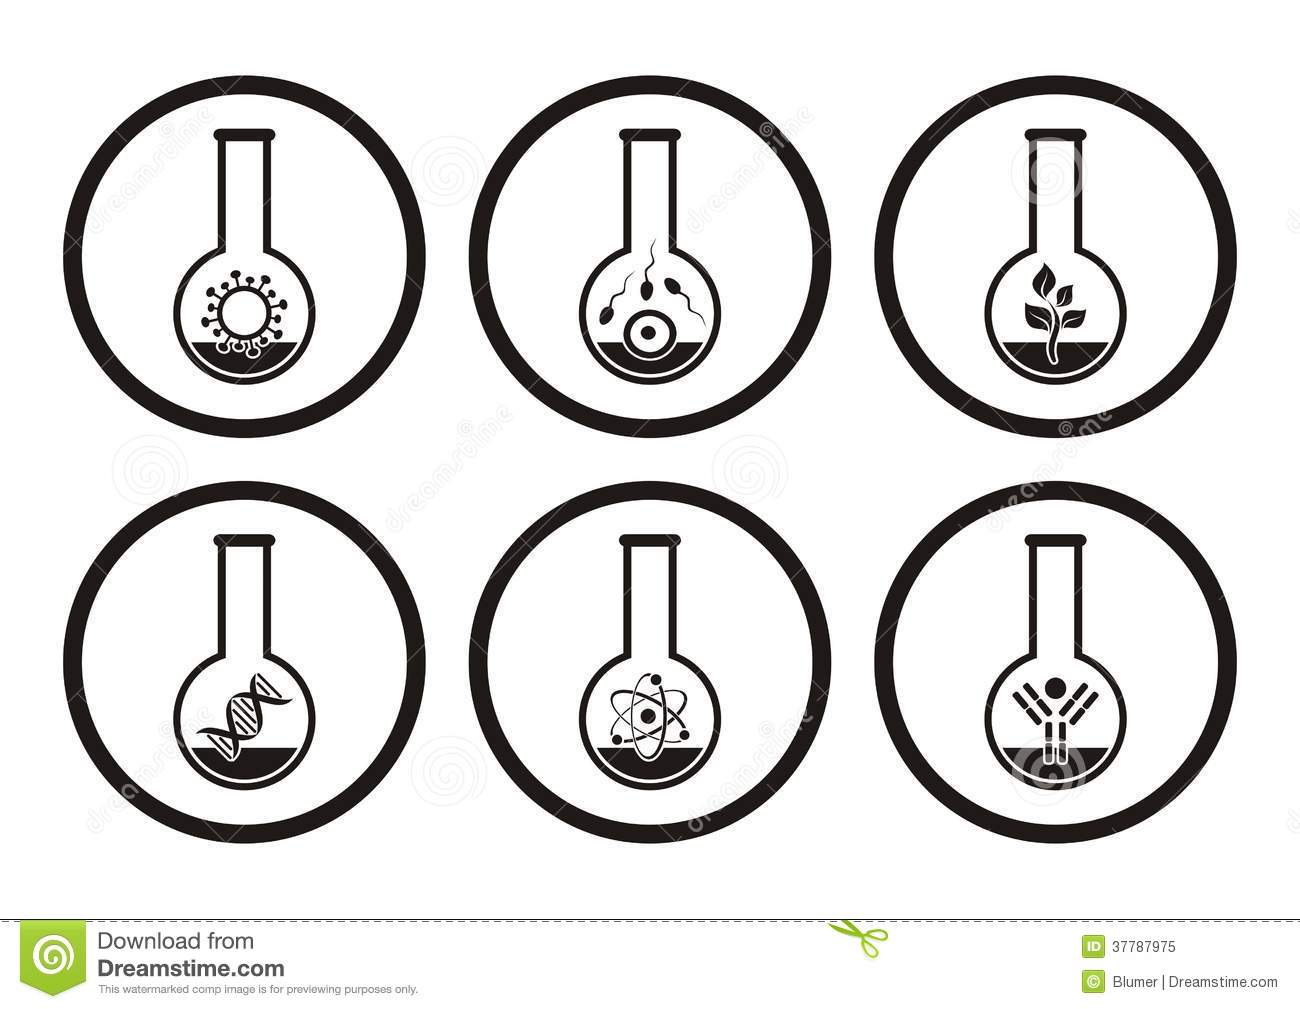 Biology icons stock vector. Image of biochemistry, genome